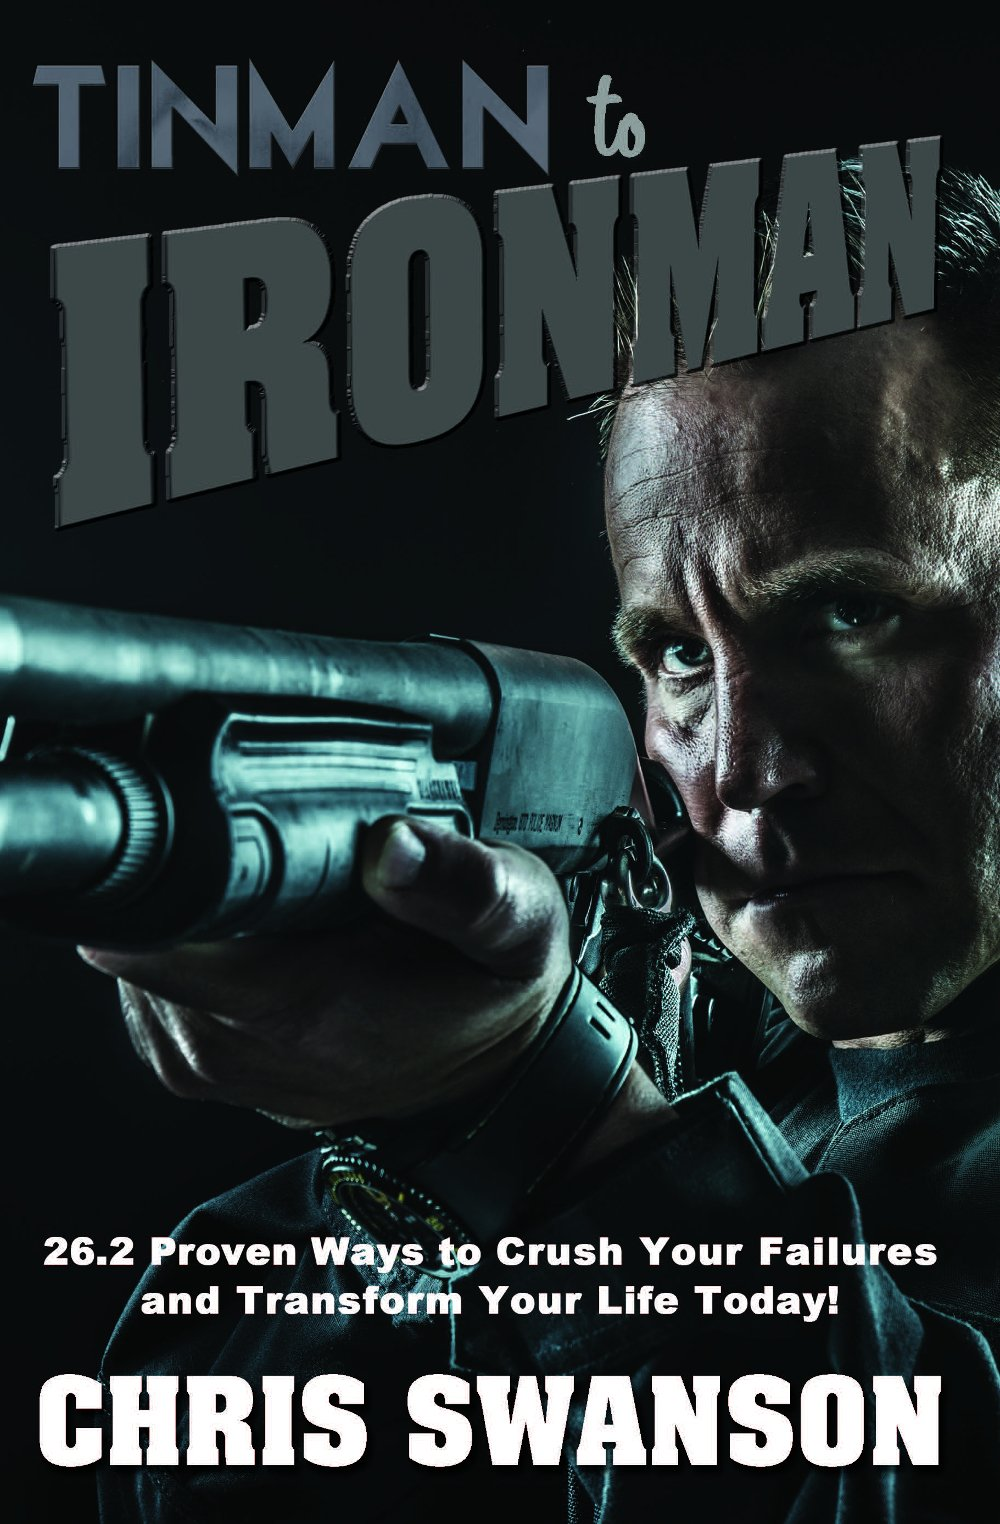 Tinman to Ironman: 26.2 Proven Ways to Crush Your Failures and Transform Your Life Today! ebook